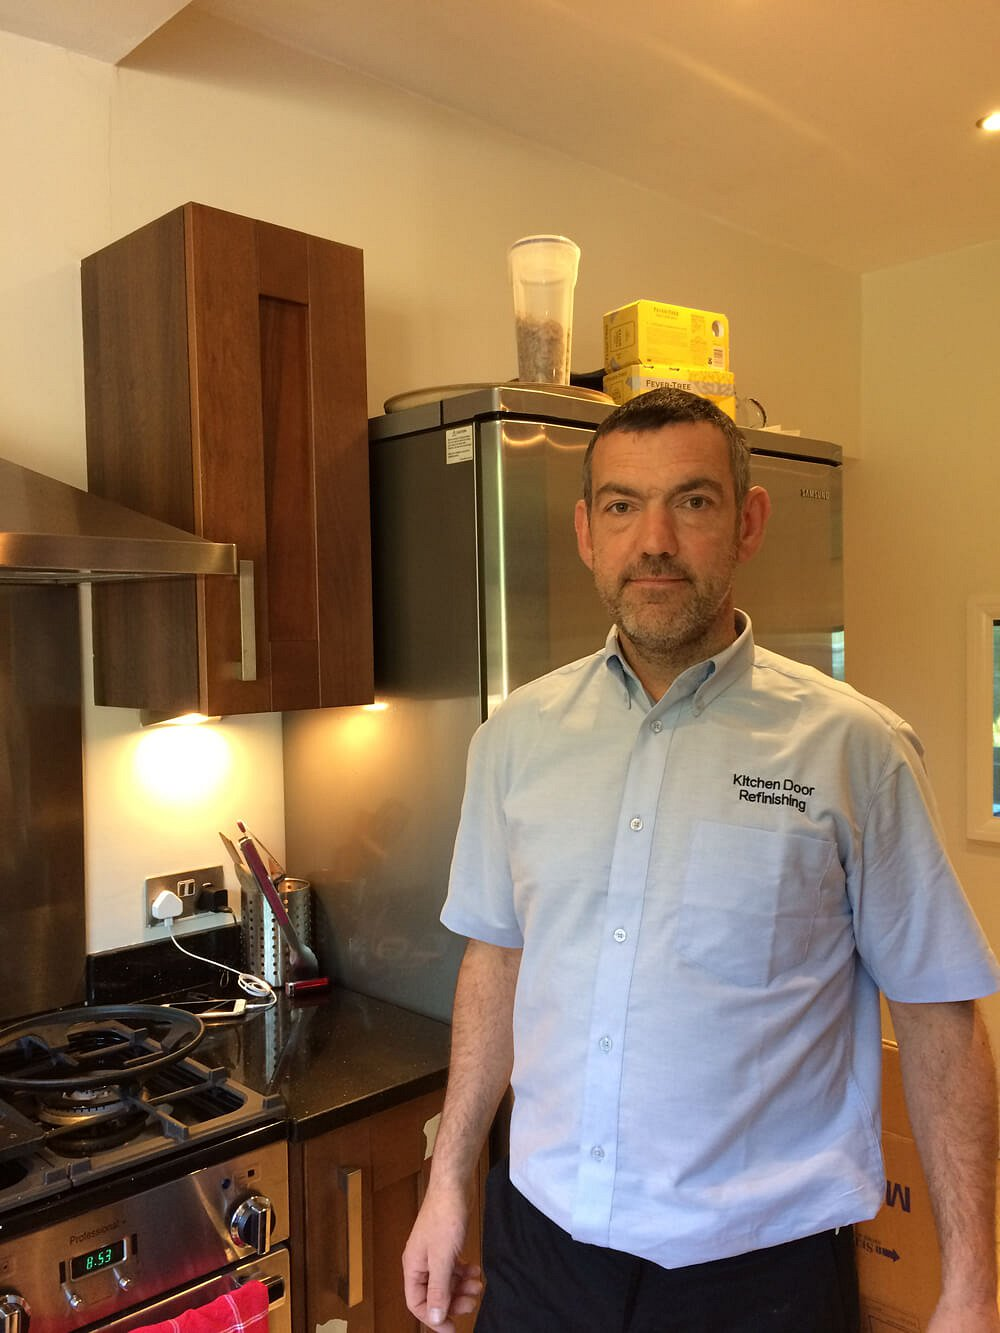 Tim McGovern, Kitchen Door Refinishing, Stockport